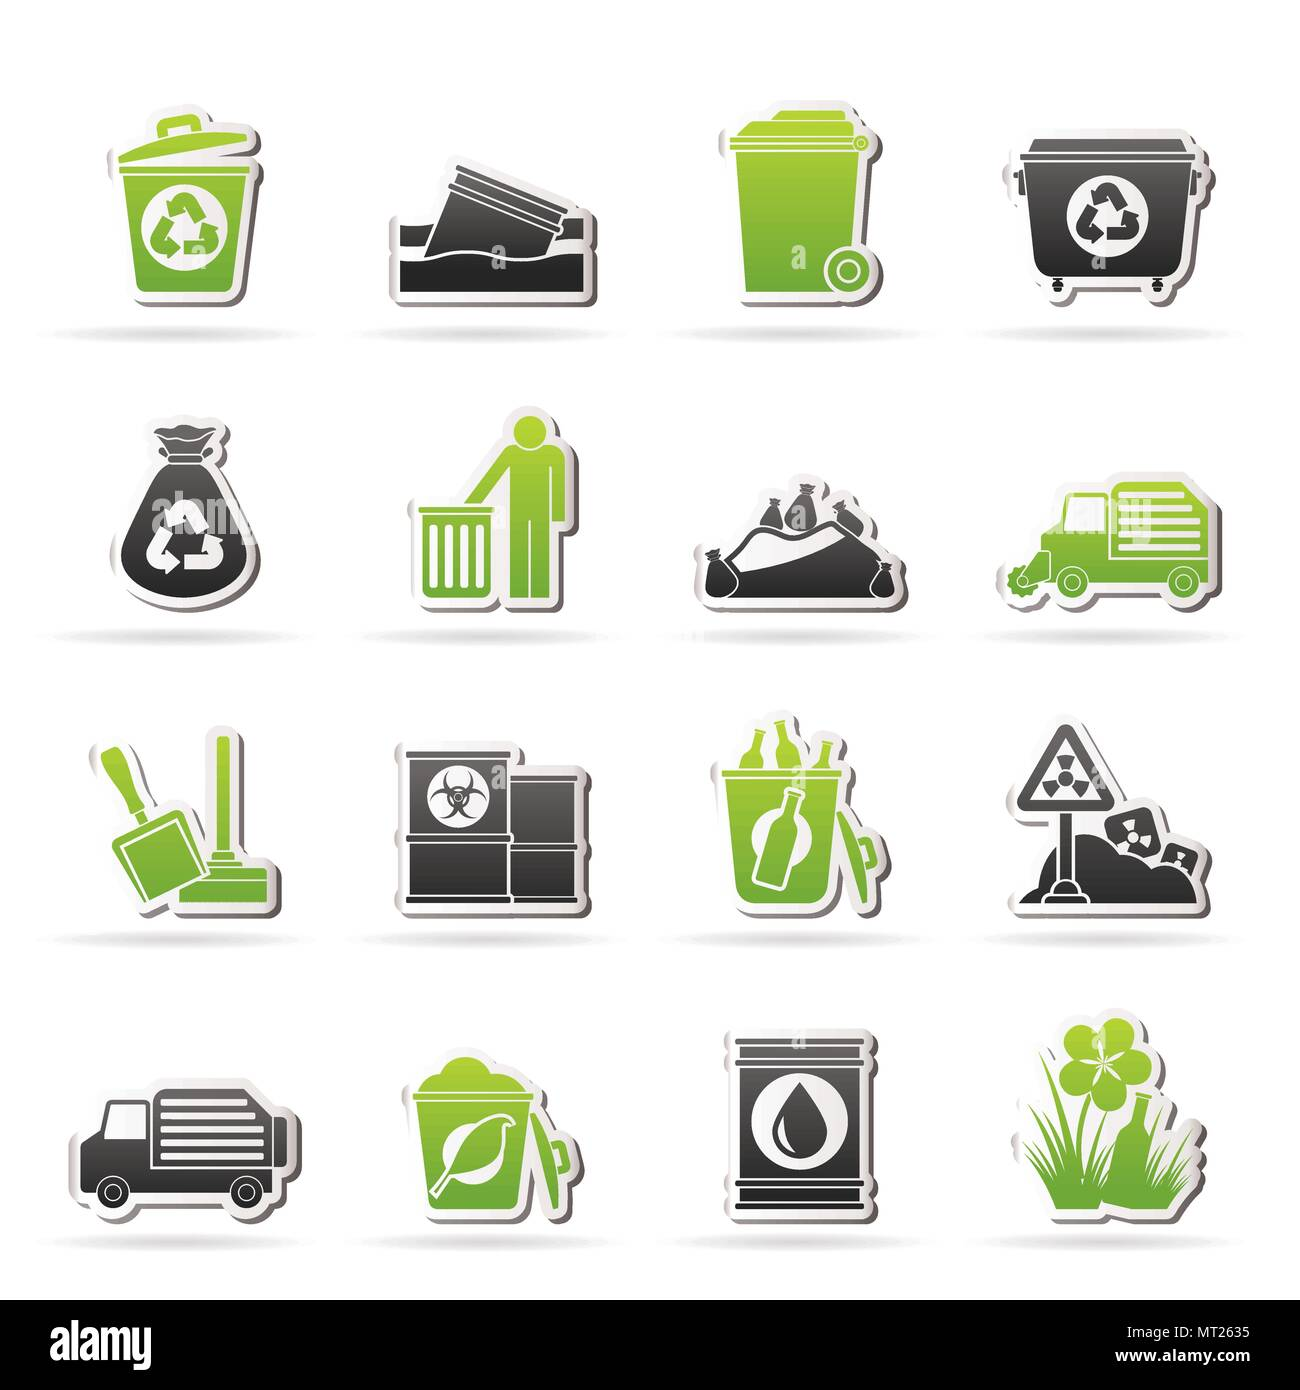 Garbage and rubbish icons - vector icon set - Stock Vector